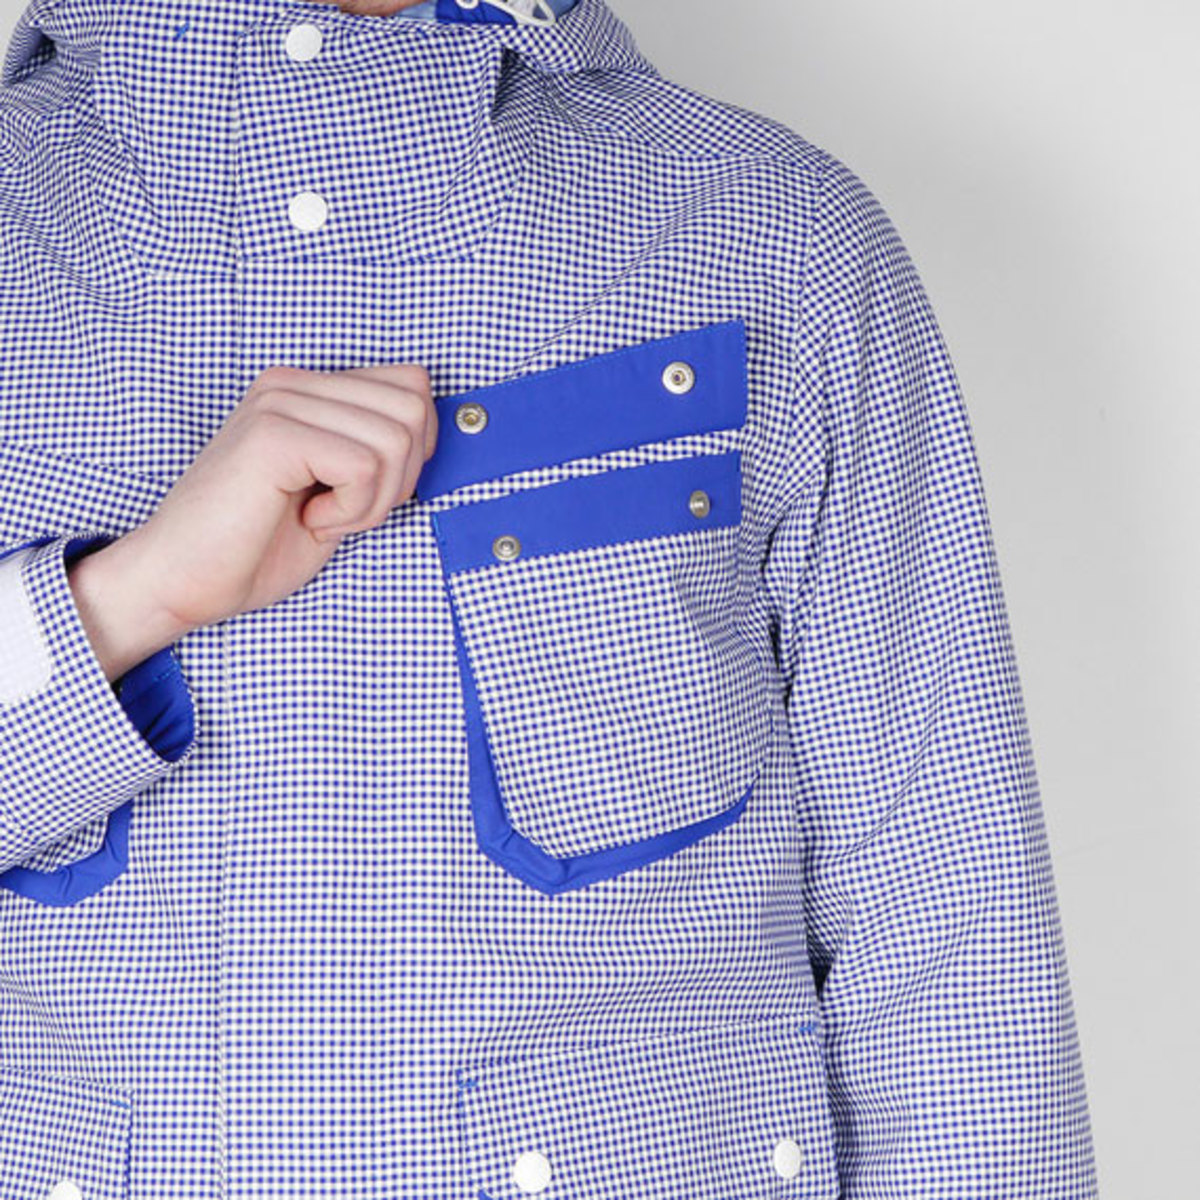 white-mountaineering-gingham-check-hood-parka-jacket-05